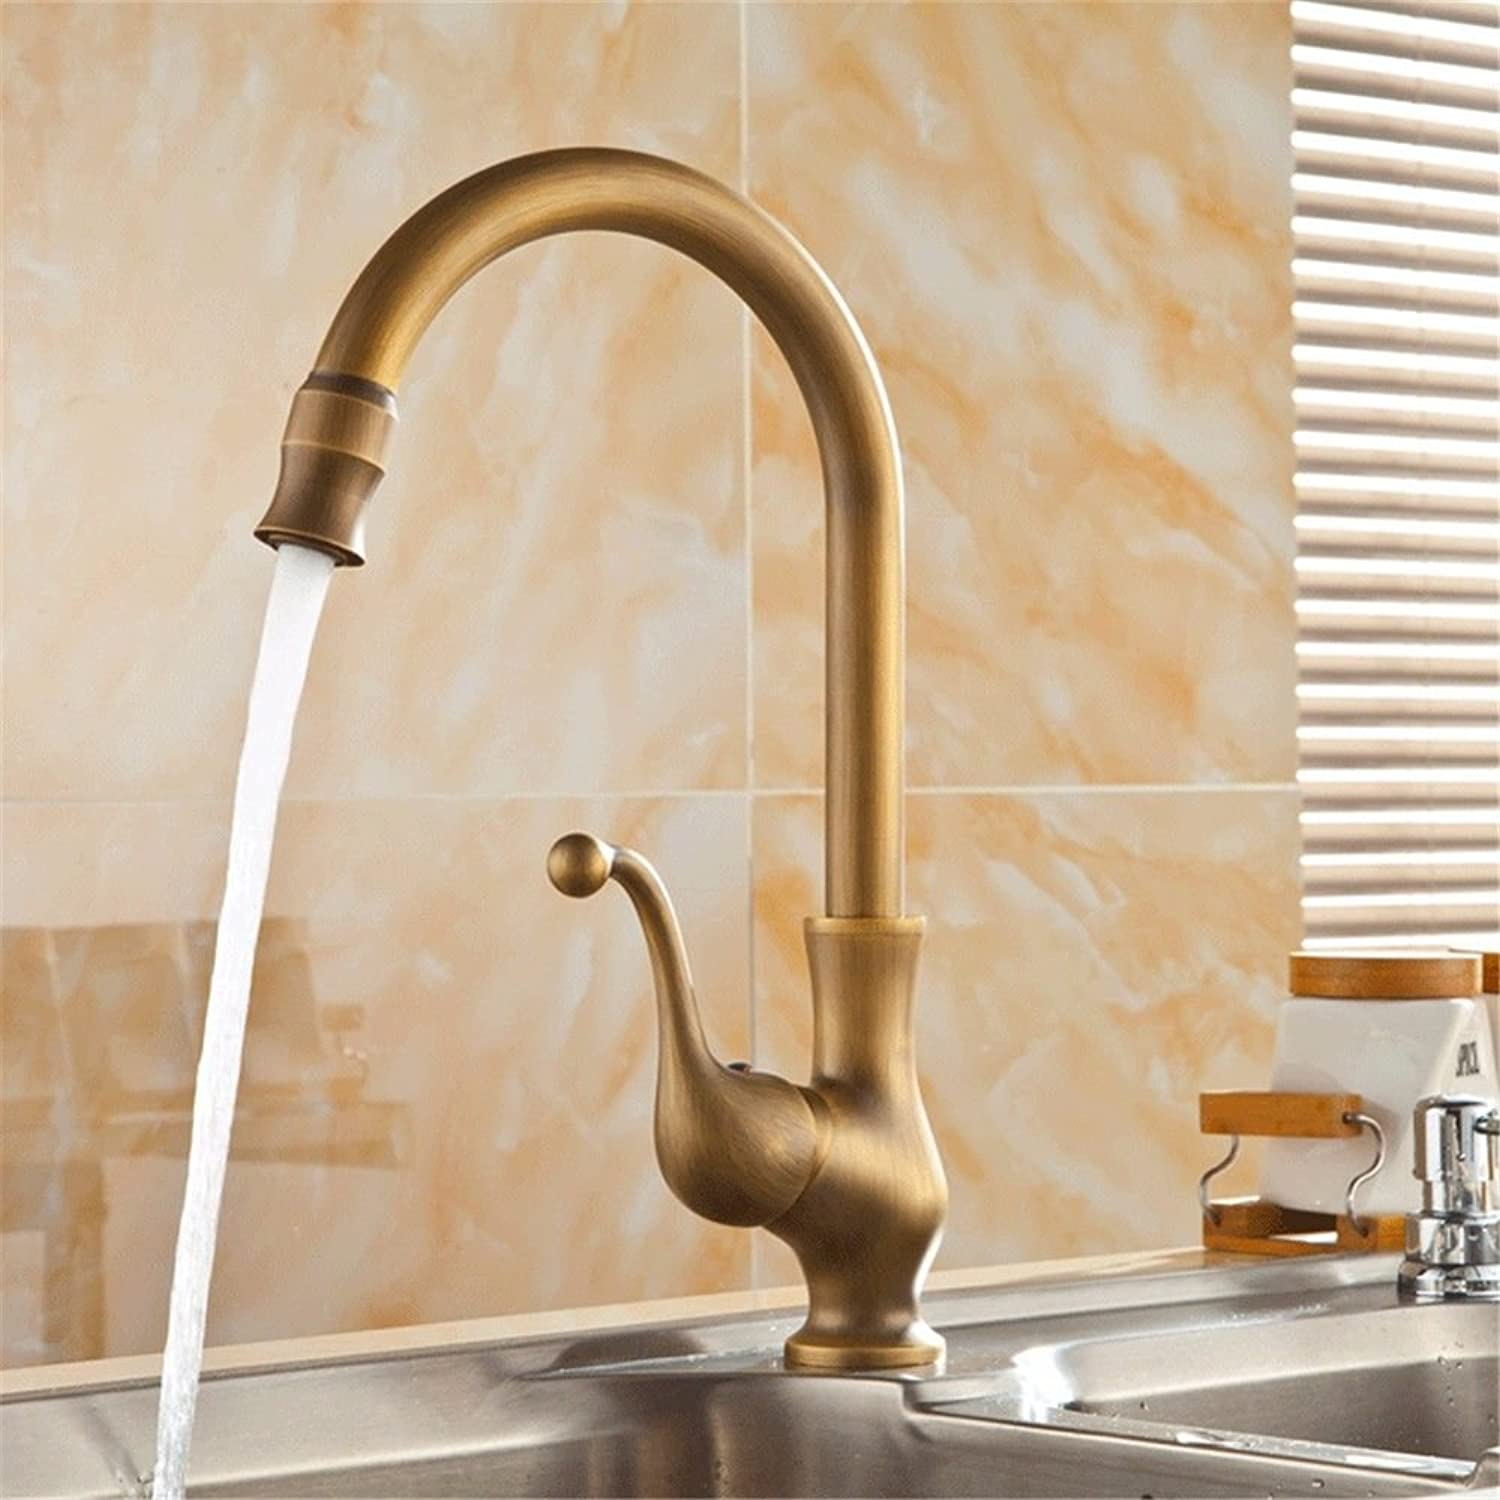 Commercial Single Lever Pull Down Kitchen Sink Faucet Brass Constructed Polished Antique Hot and Cold Water Single Hole Single Handle Large Curved Kitchen Faucet